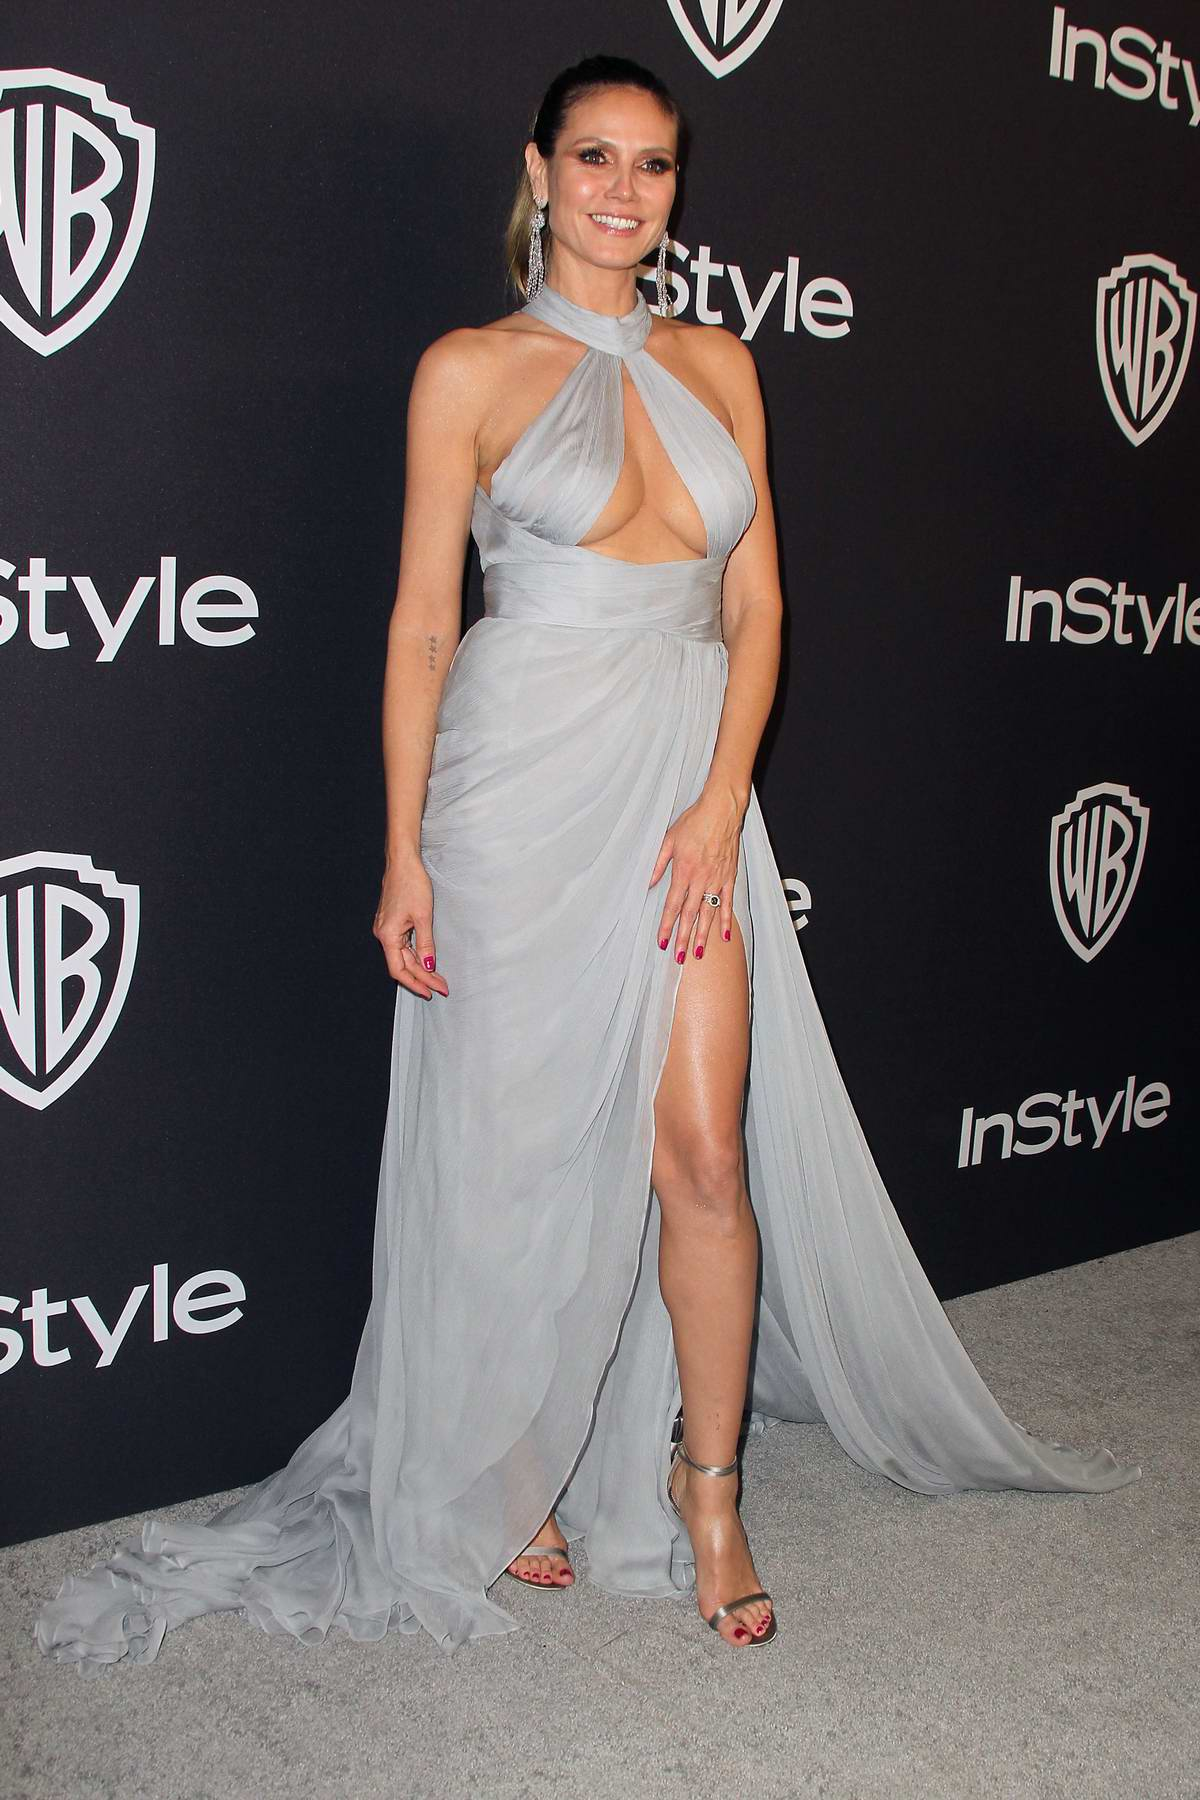 Heidi Klum attends InStyle and Warner Bros Golden Globe After Party 2019 at Beverly Hilton Hotel in Beverly Hills, California